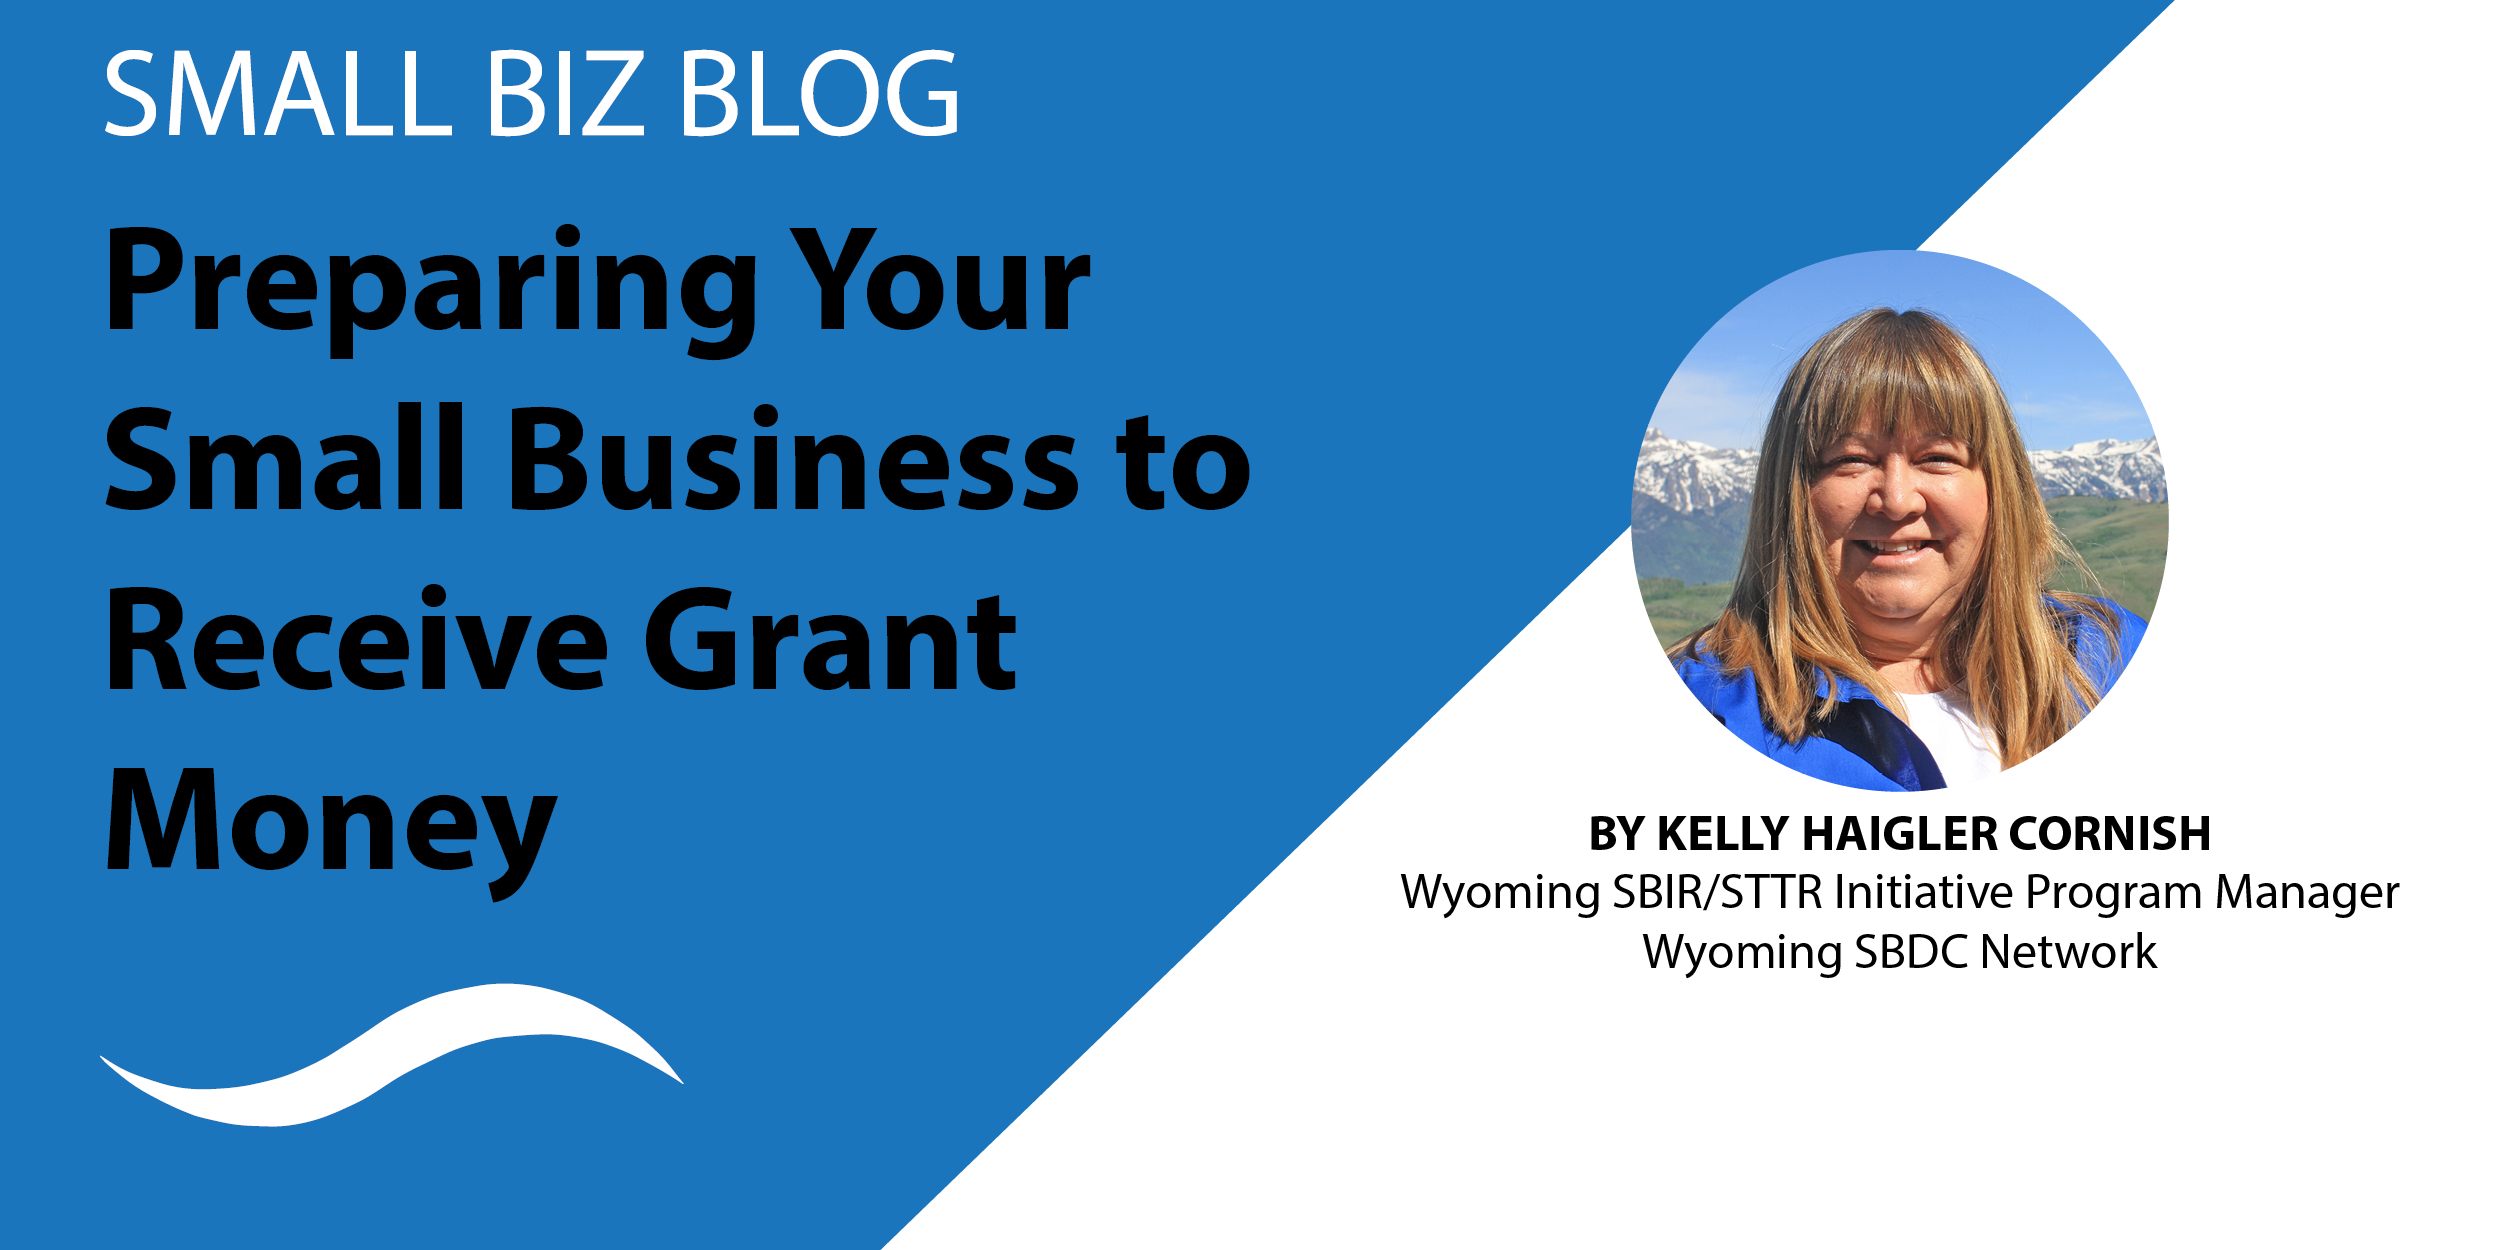 Preparing Your Small Business to Receive Grant Money